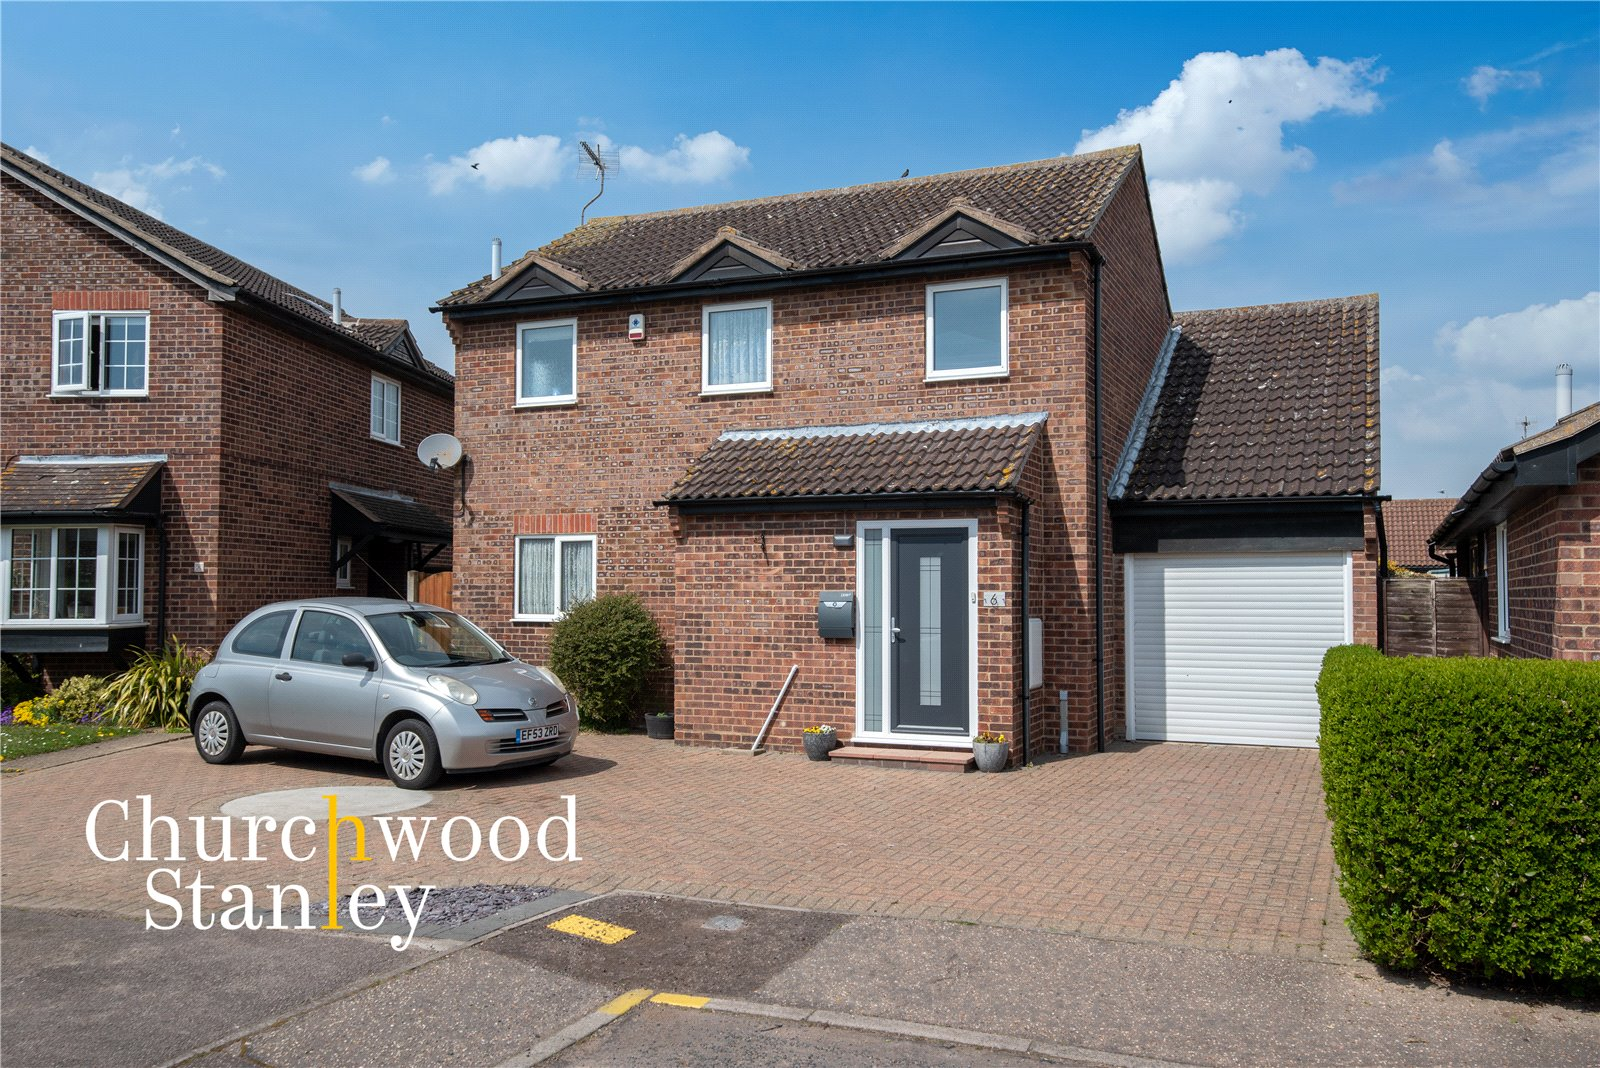 3 bed house for sale in Warnham Close, Clacton-on-Sea, CO16